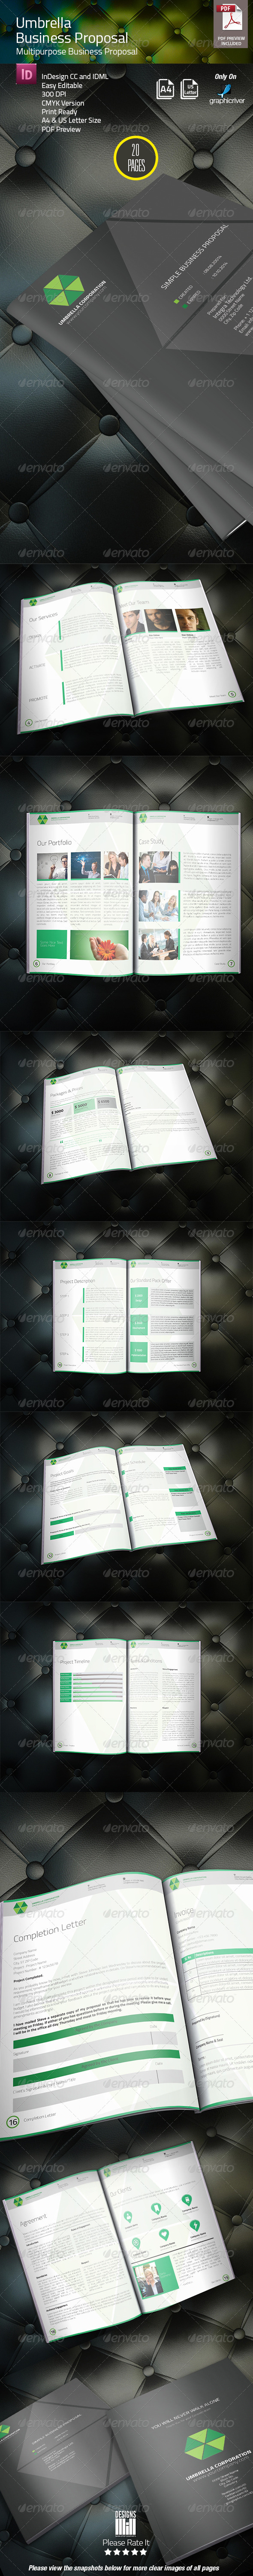 GraphicRiver Umbrella Business Proposal 8283814